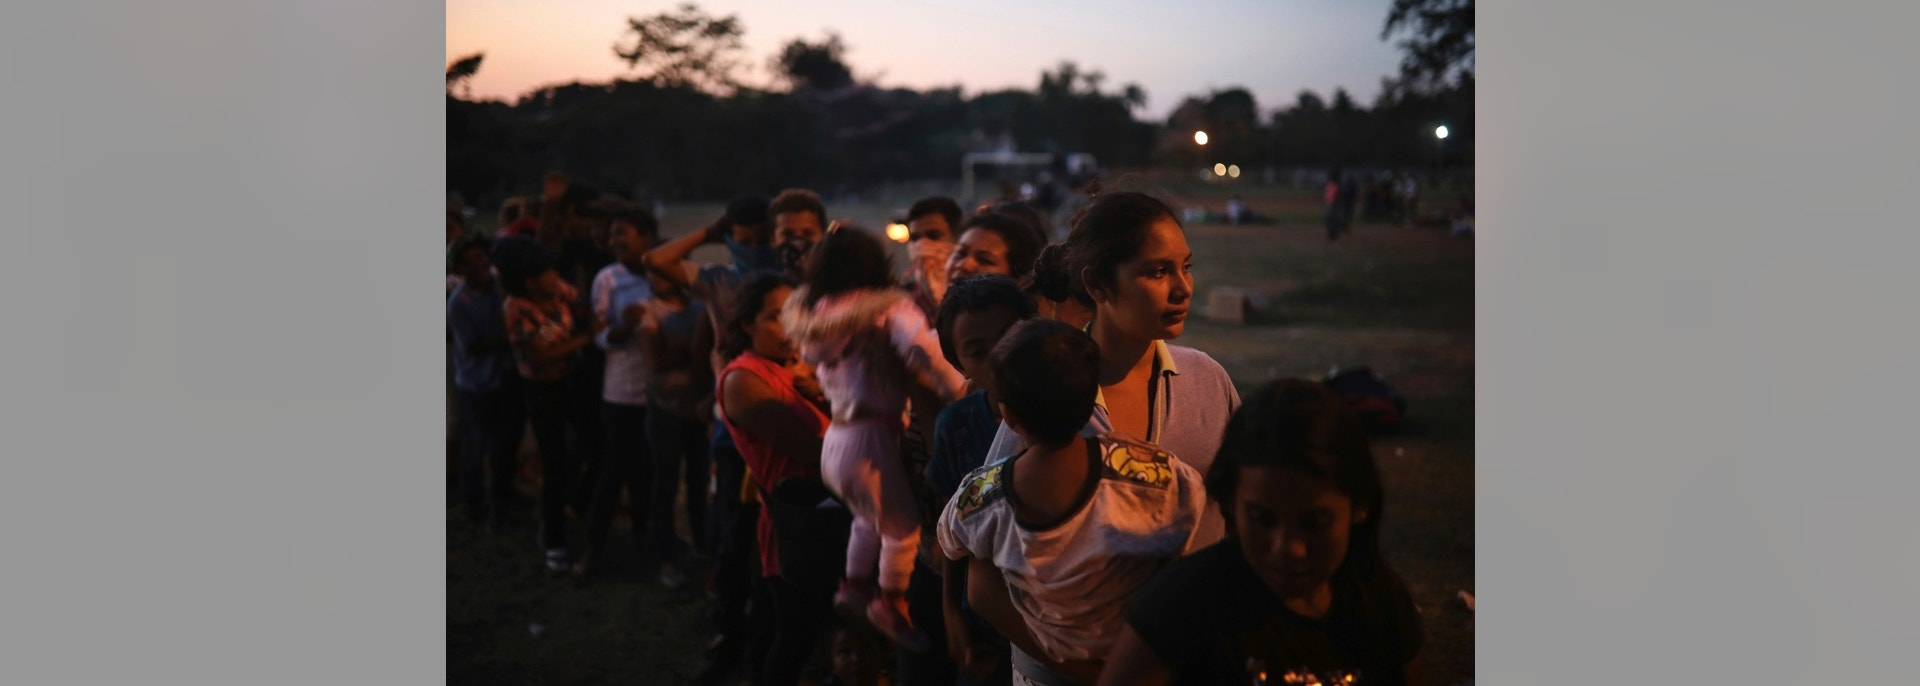 Central American migrant women and children stand in line for food during the annual Migrant Stations of the Cross caravan as the group sets up camp at a sports center in Matias Romero, Oaxaca state, Mexico, late Monday, April 2, 2018. The annual caravans have been held in southern Mexico for years as an Easter-season protest against the kidnappings, extortion, beatings and killings suffered by many Central American migrants as they cross Mexico. (AP Photo/Felix Marquez)